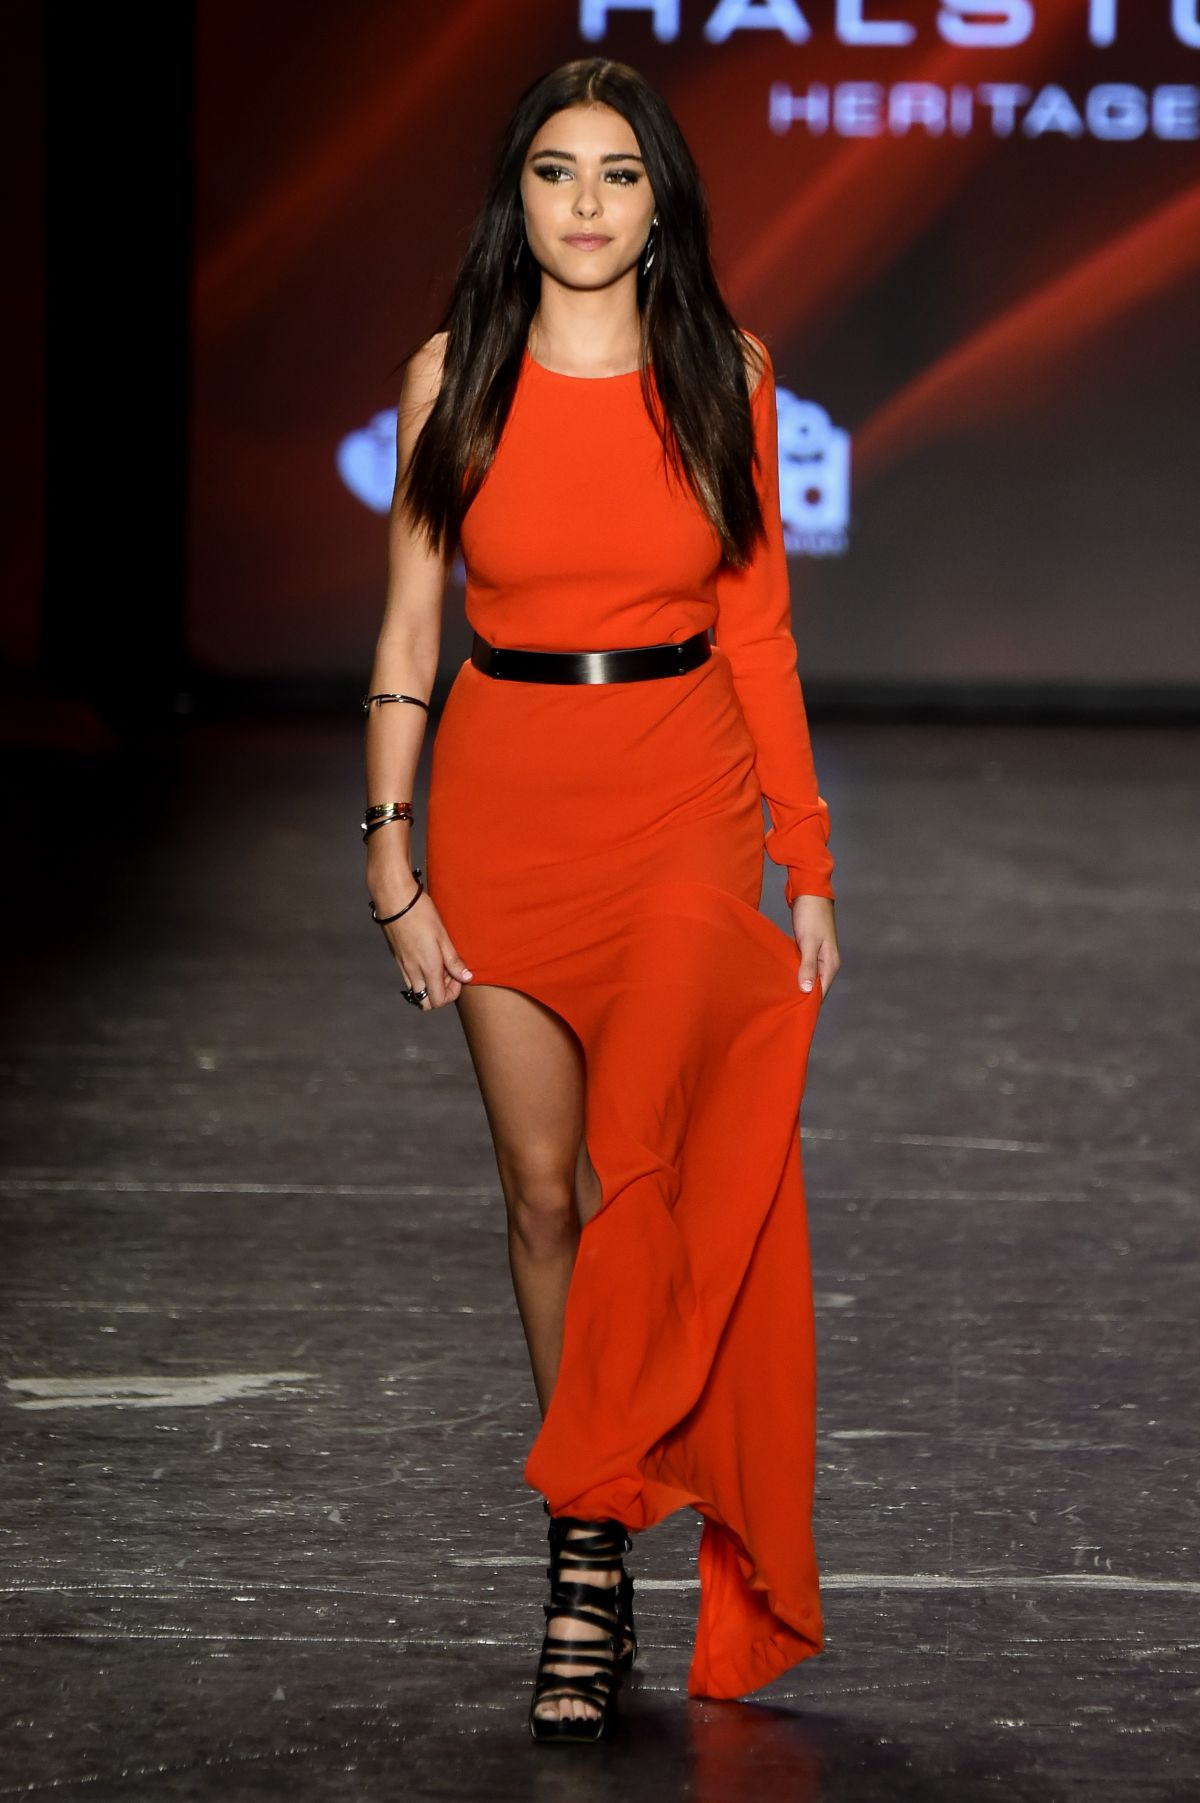 Madison Beer at Fashion Show